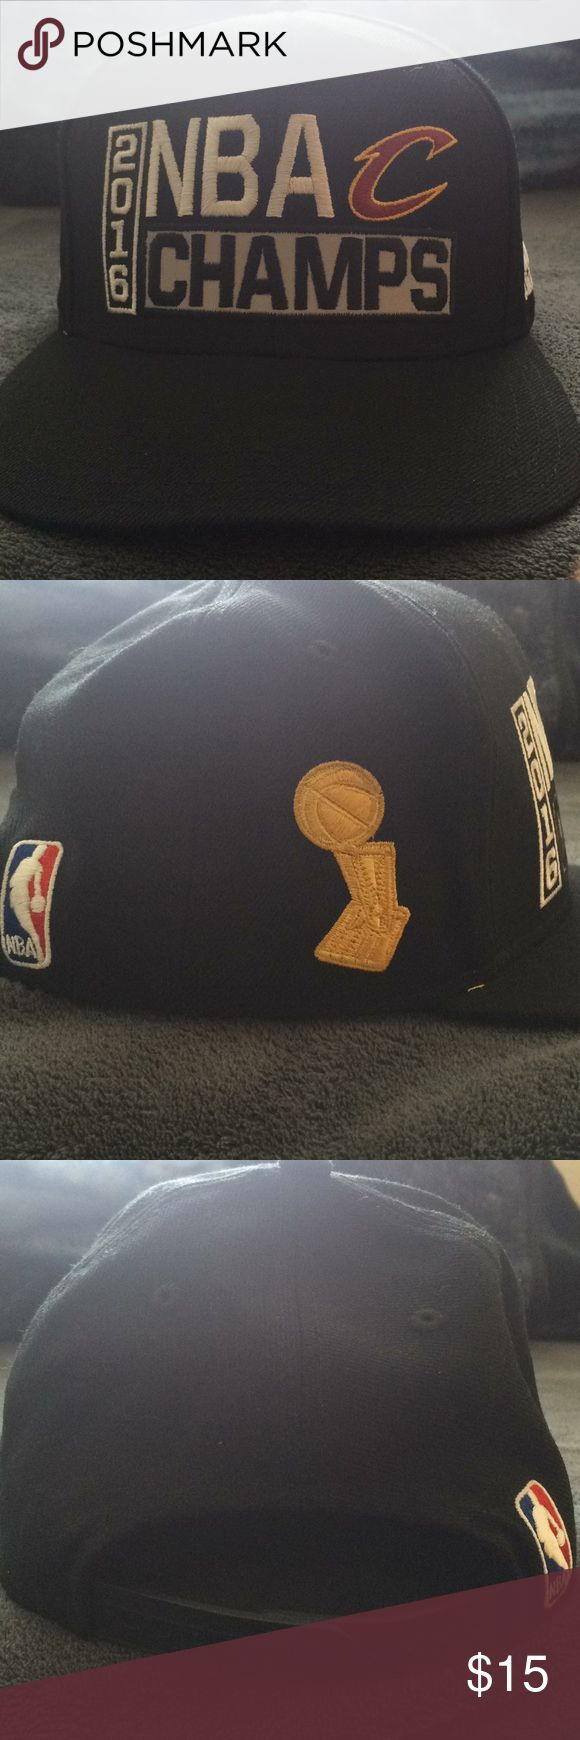 NBA Cavs 2016 Championship Hat Used, bill is slightly bent, but overall no damage. adidas Accessories Hats